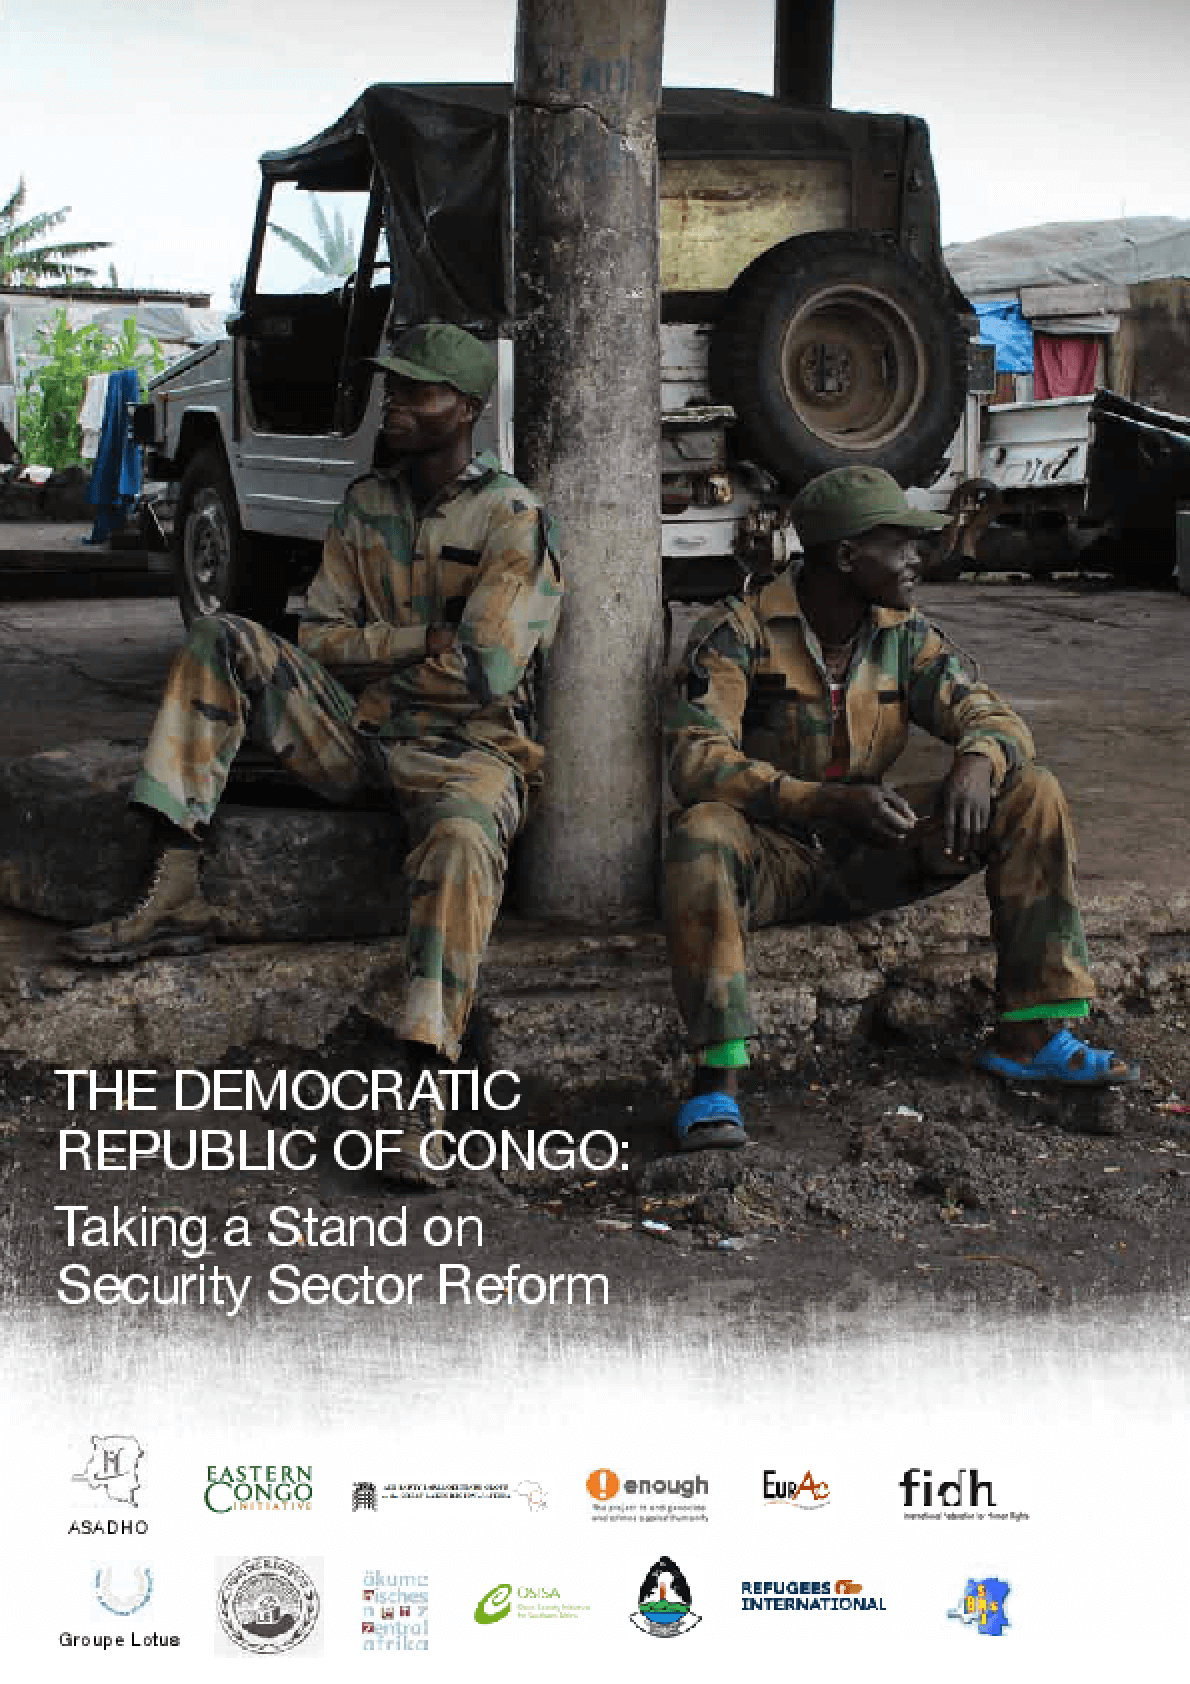 The Democratic Republic of Congo: Taking a Stand on Security Sector Reform